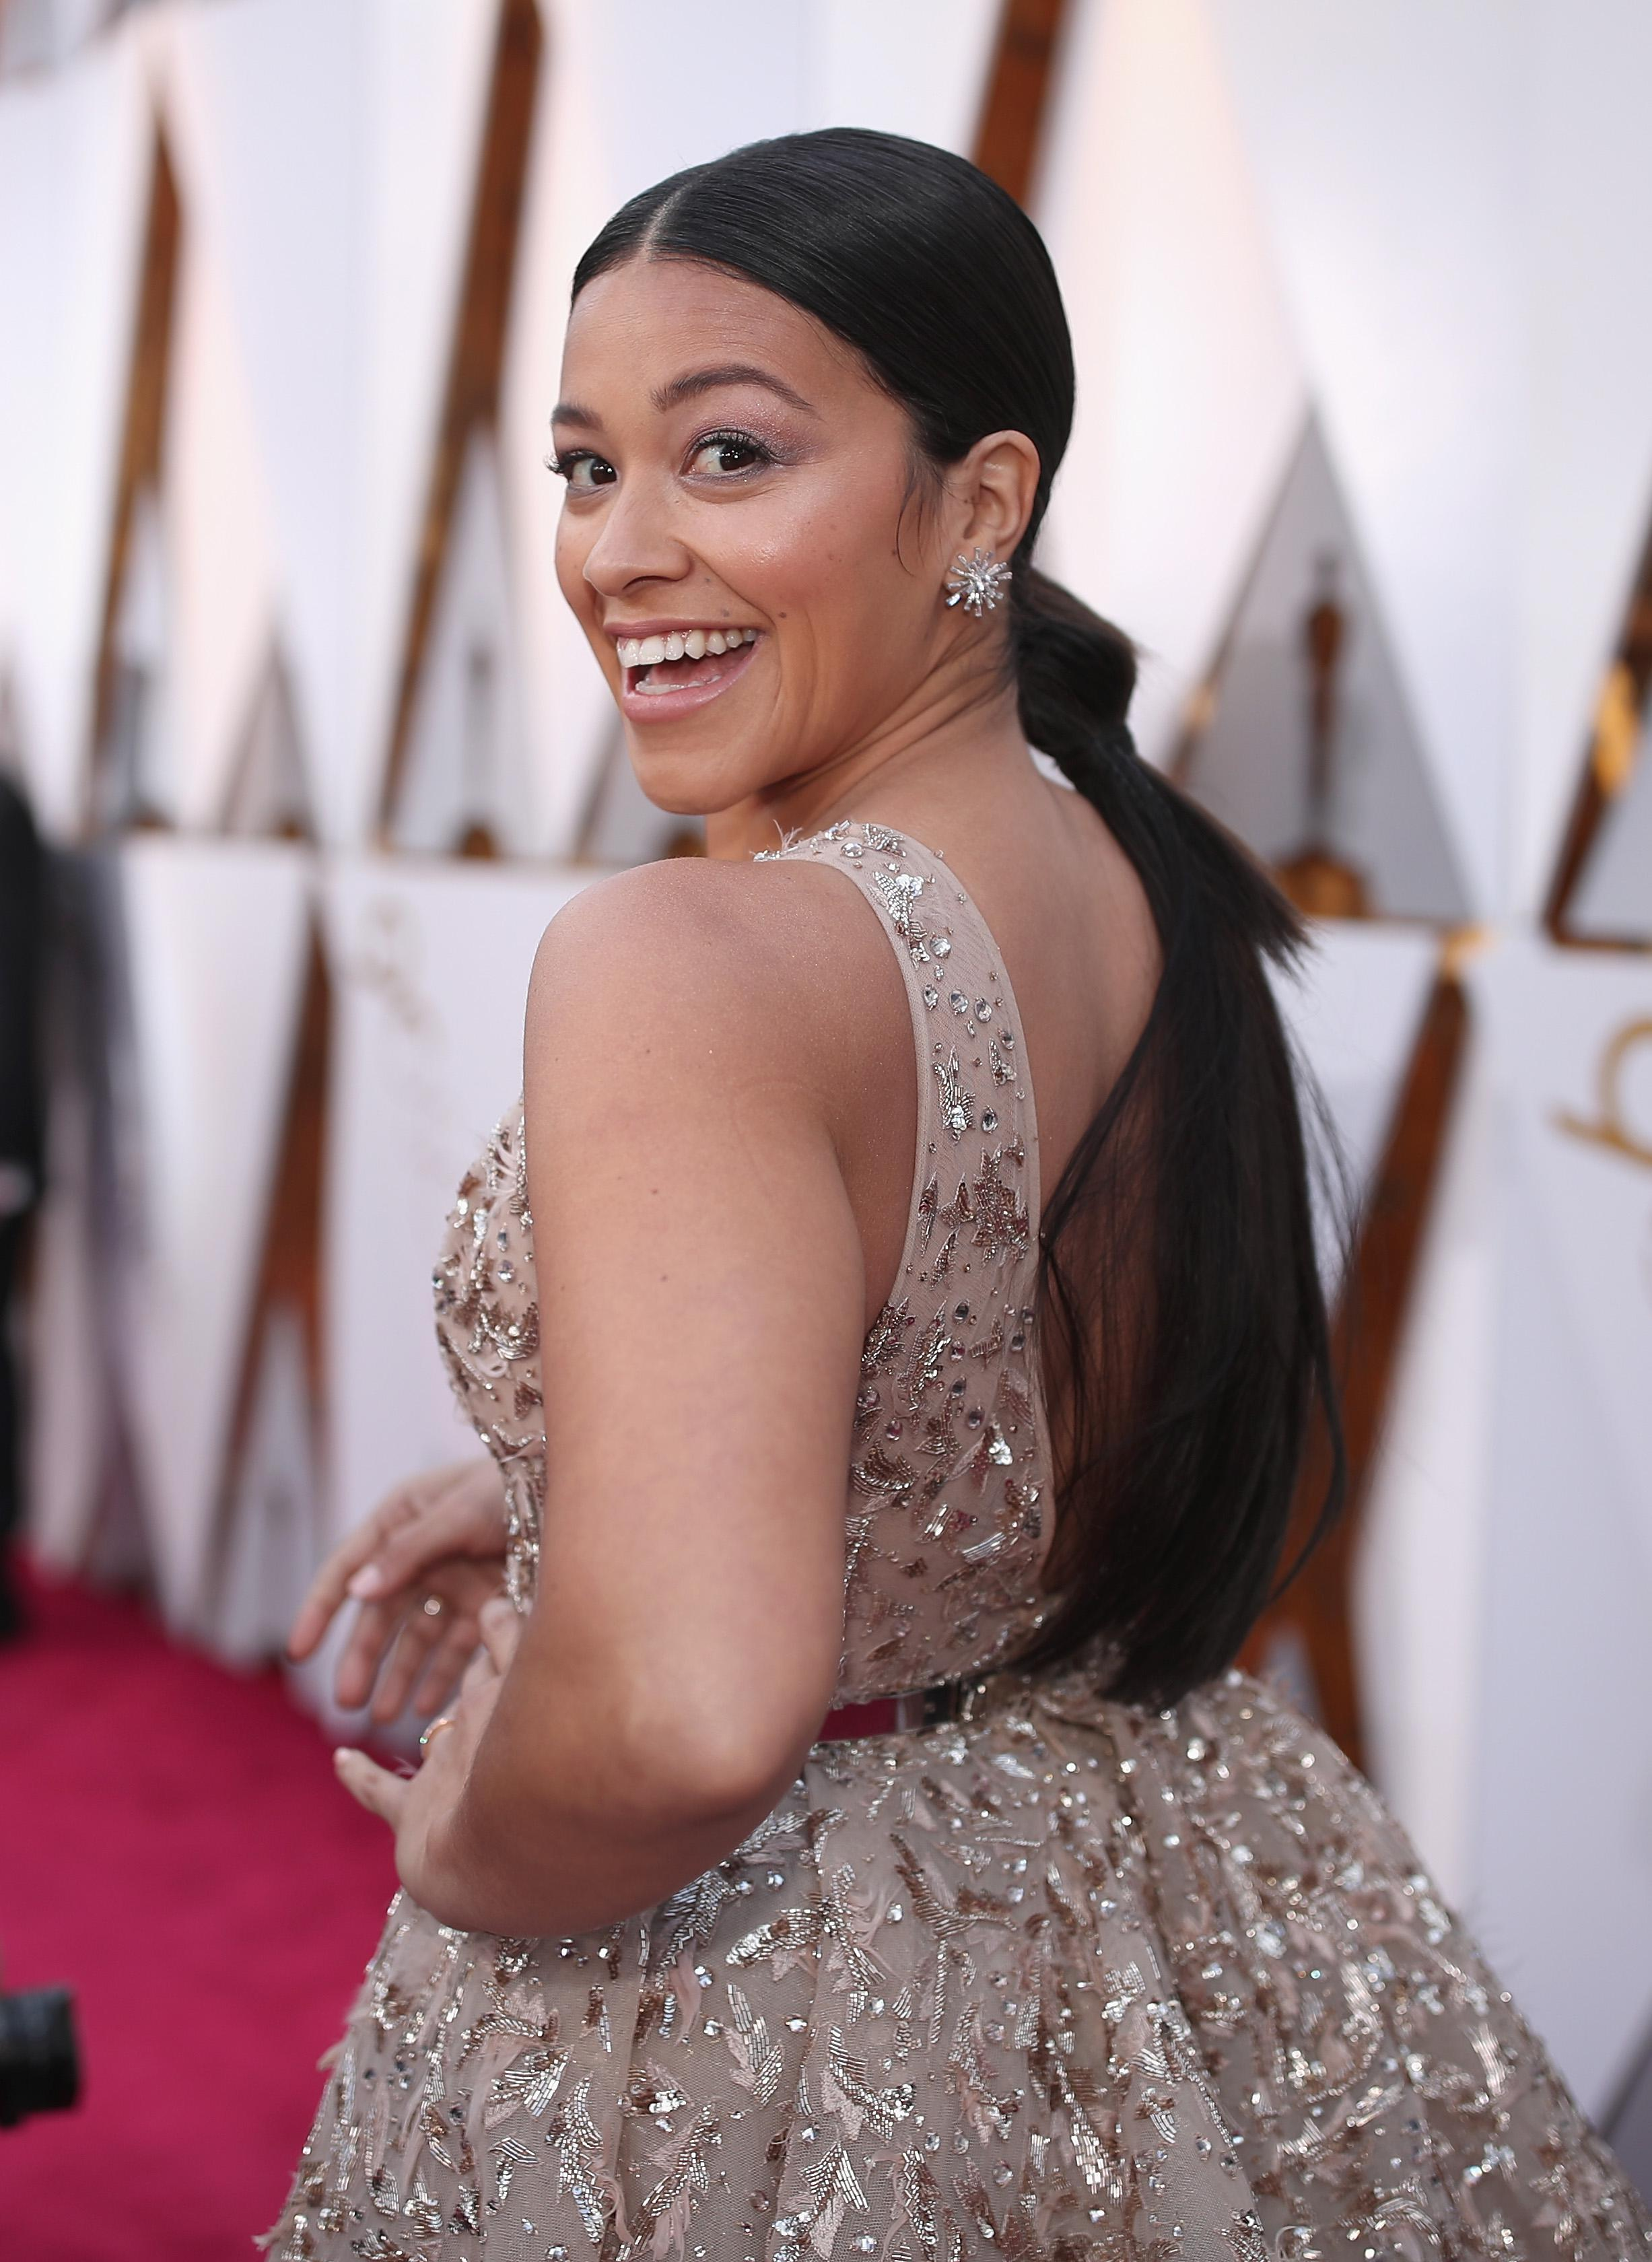 HOLLYWOOD, CA - MARCH 04: Gina Rodriguez attends the 90th Annual Academy Awards at Hollywood & Highland Center on March 4, 2018 in Hollywood, California.  (Photo by Christopher Polk/Getty Images)